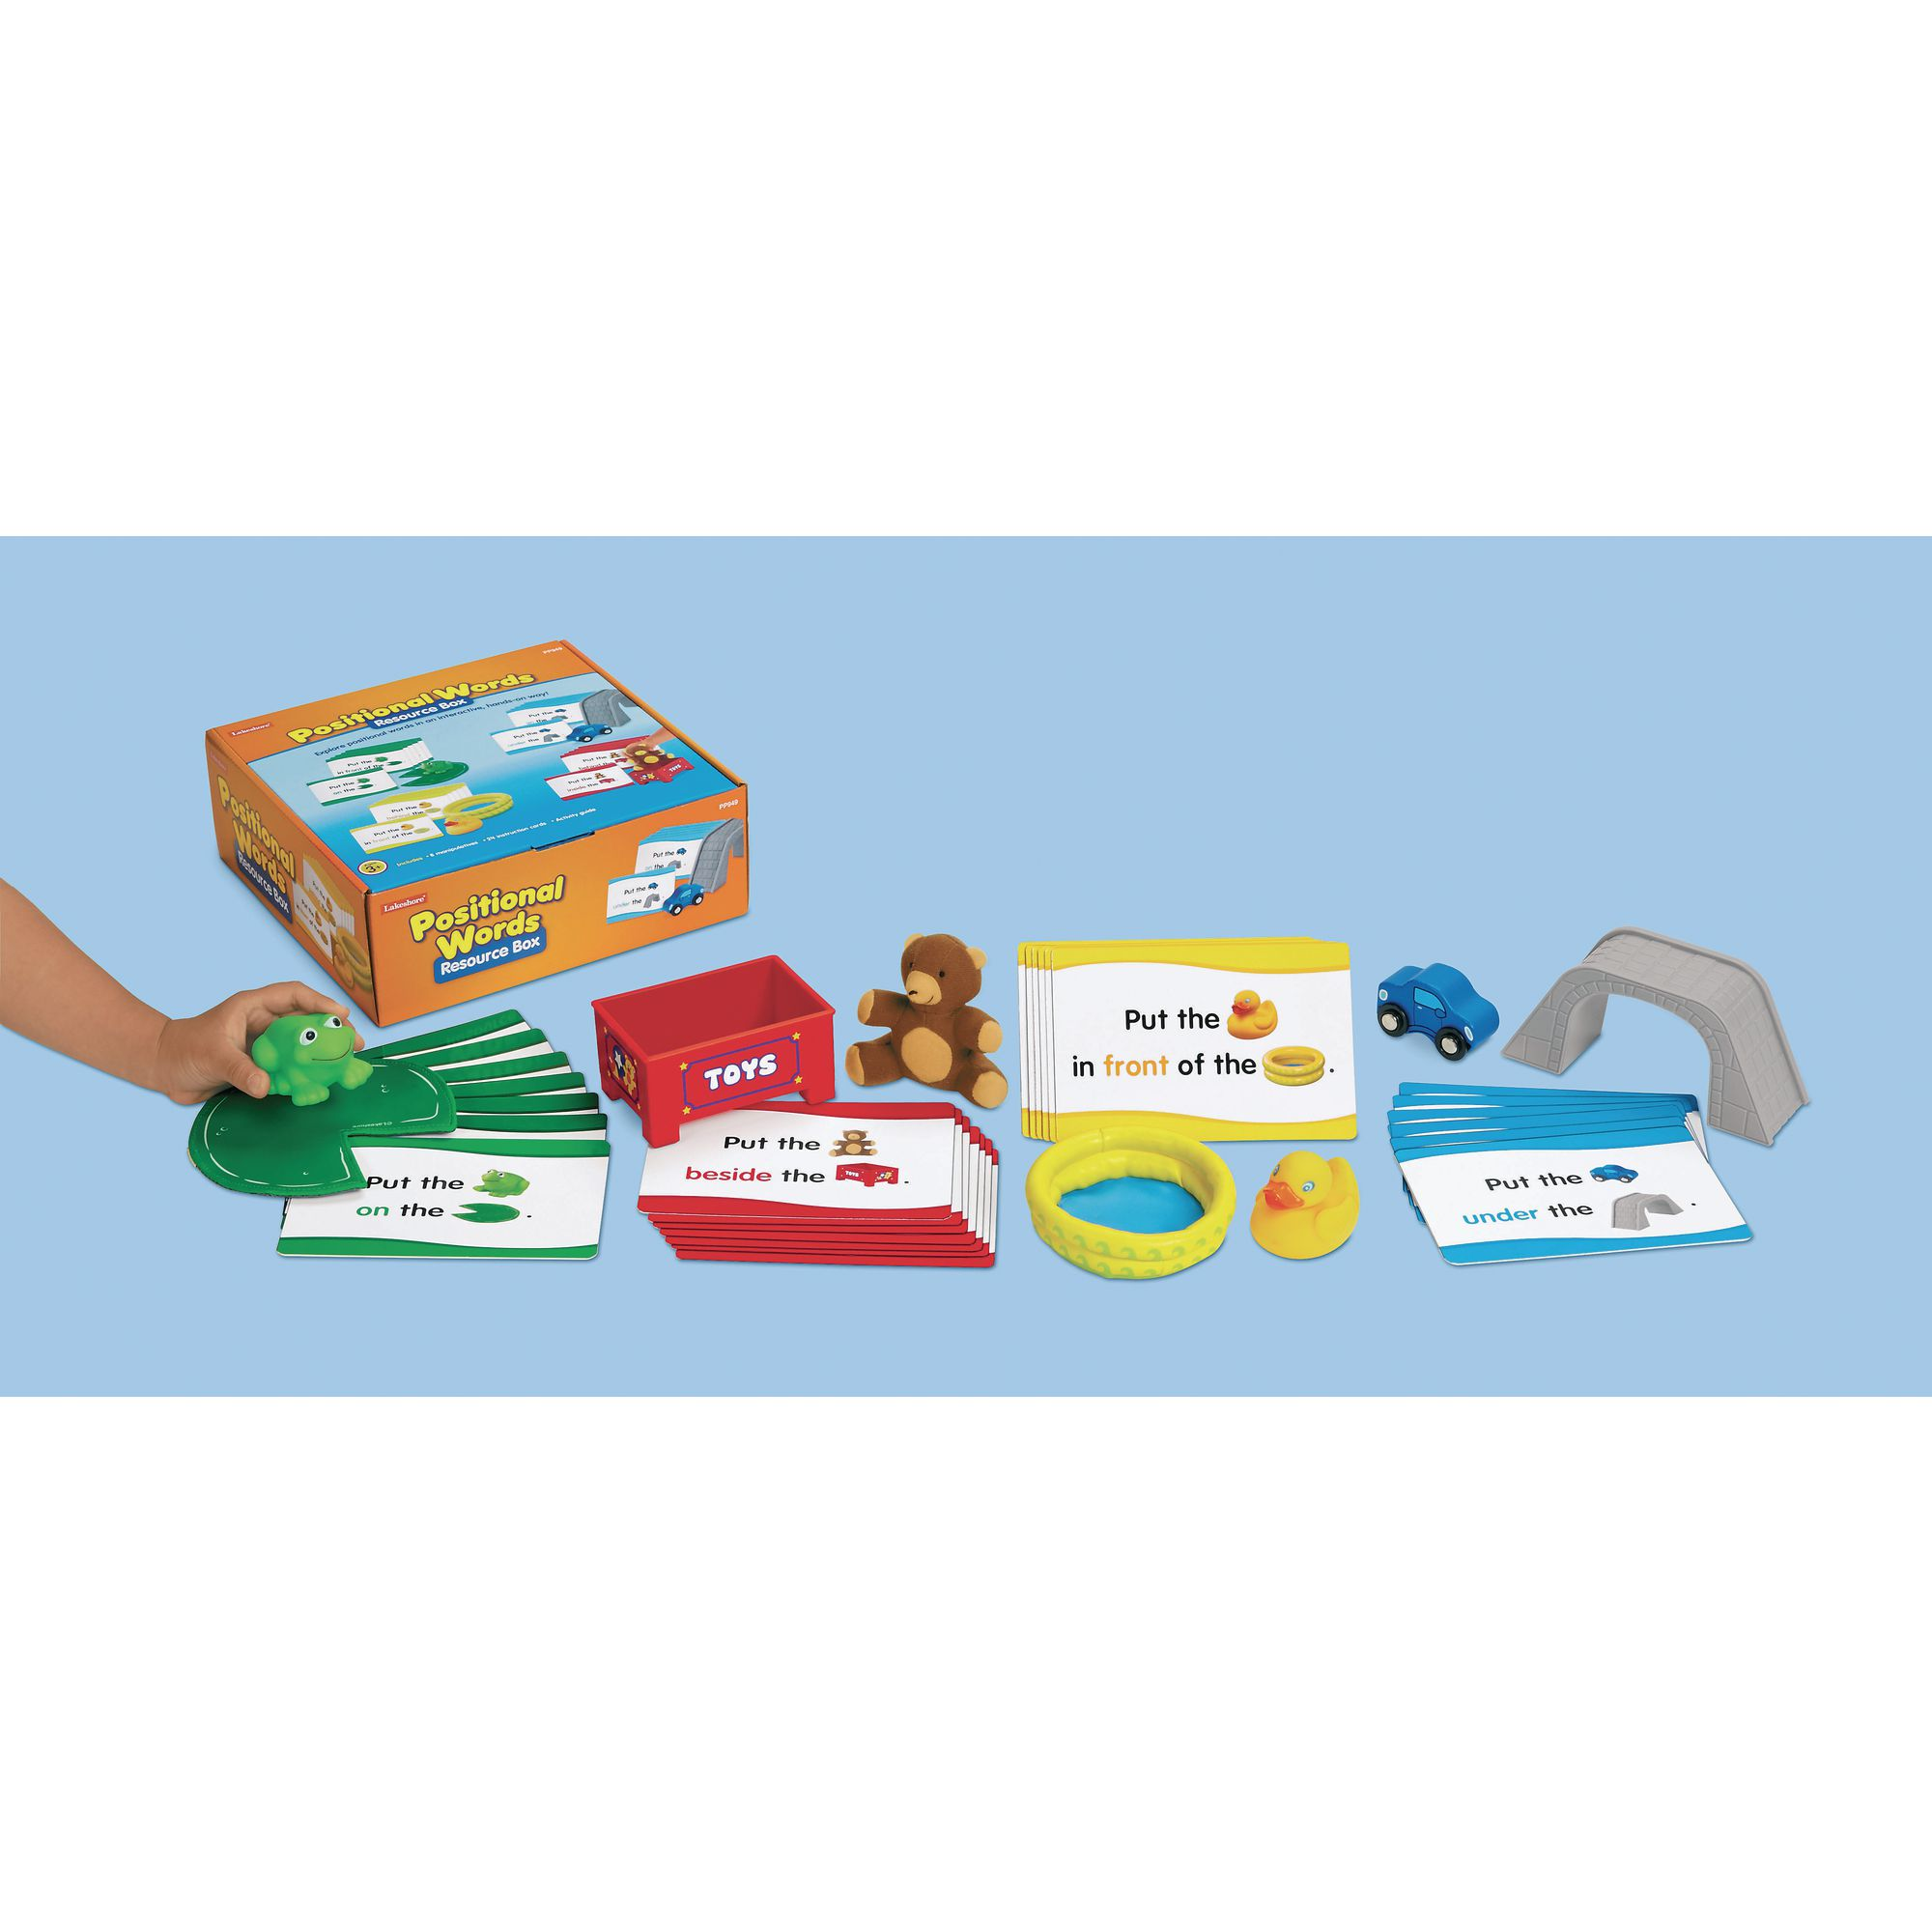 positional words resource box hope education